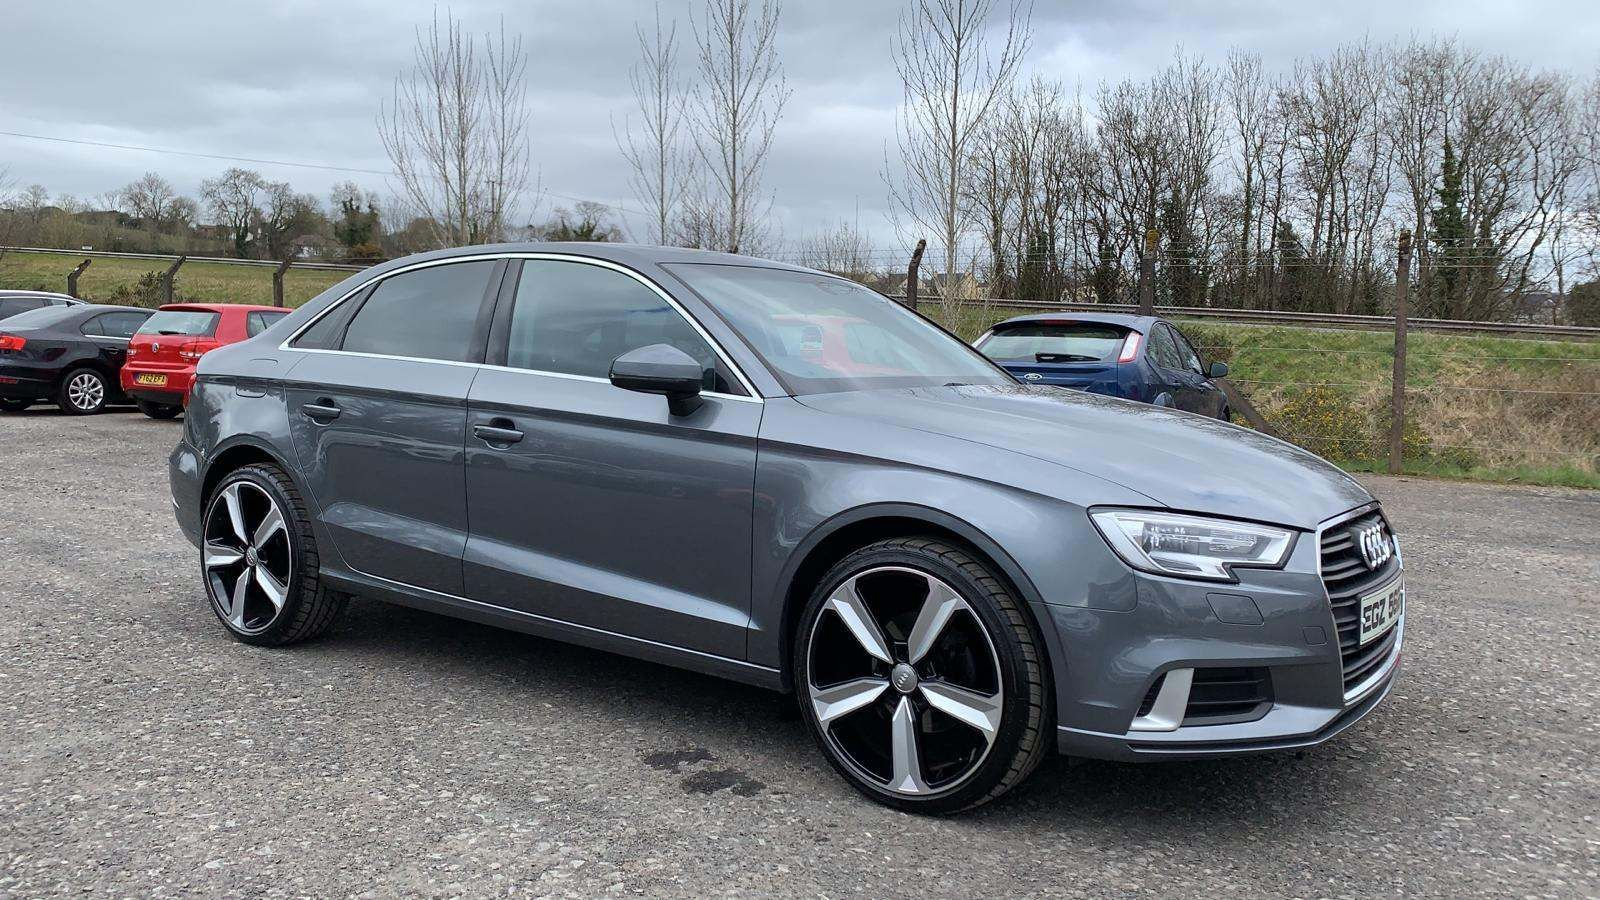 2017 AUDI A3 1.6 TDI Sport (s/s) Diesel Manual Sat Nav  £20 Road Tax 19″ Allo – J R S Commercials And Cars Dungannon